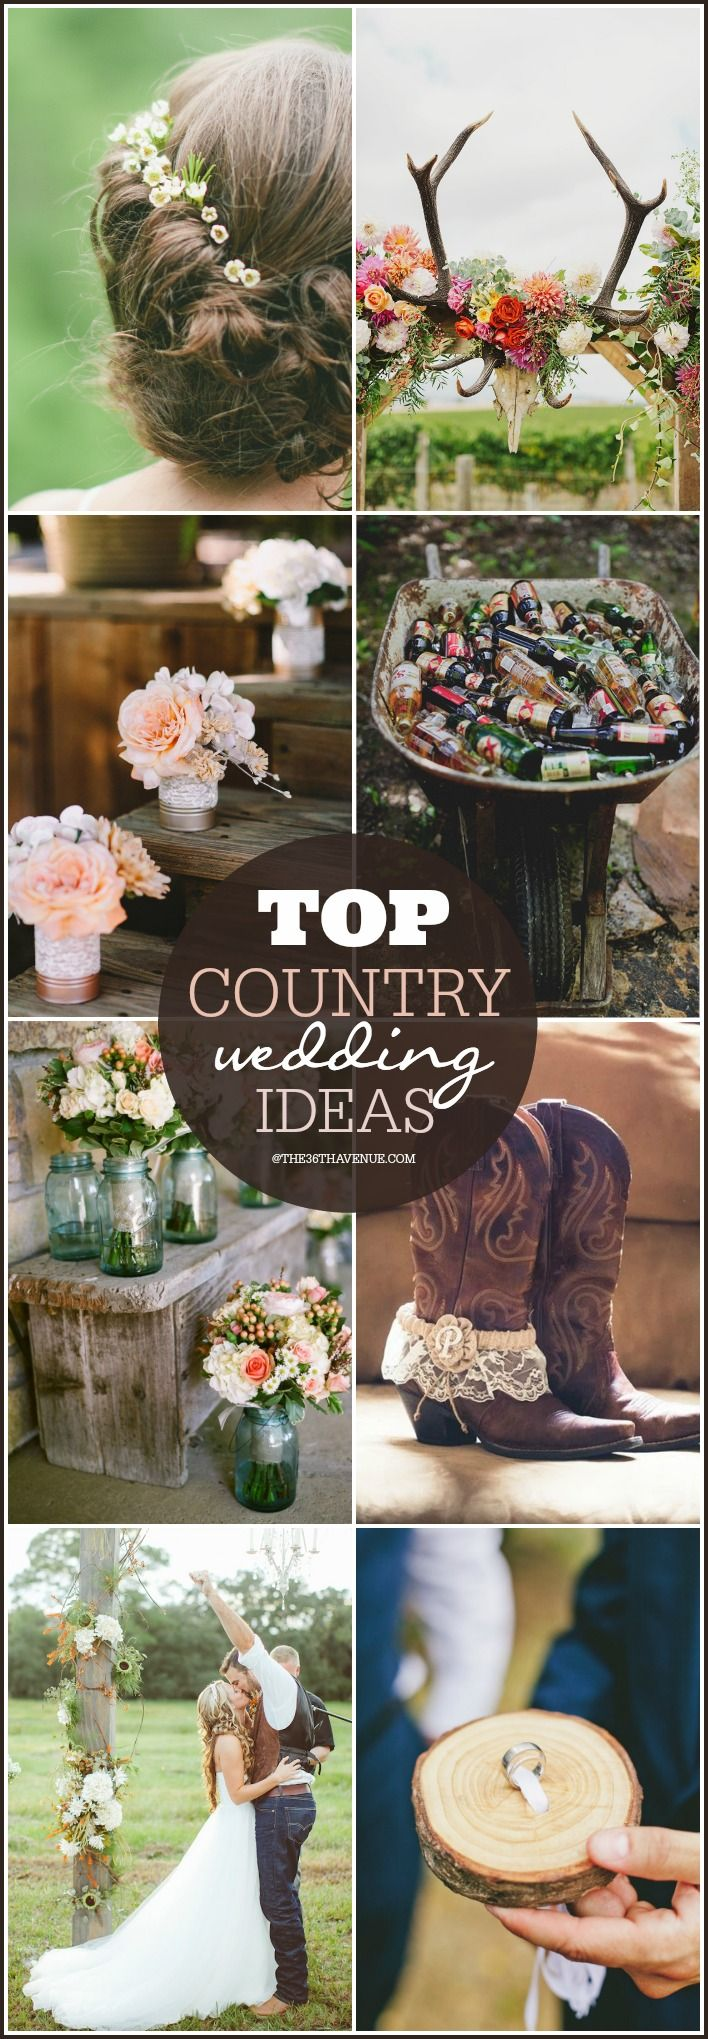 Country Wedding Ideas Rustic And Vintage Weddings Hochzeit Deko